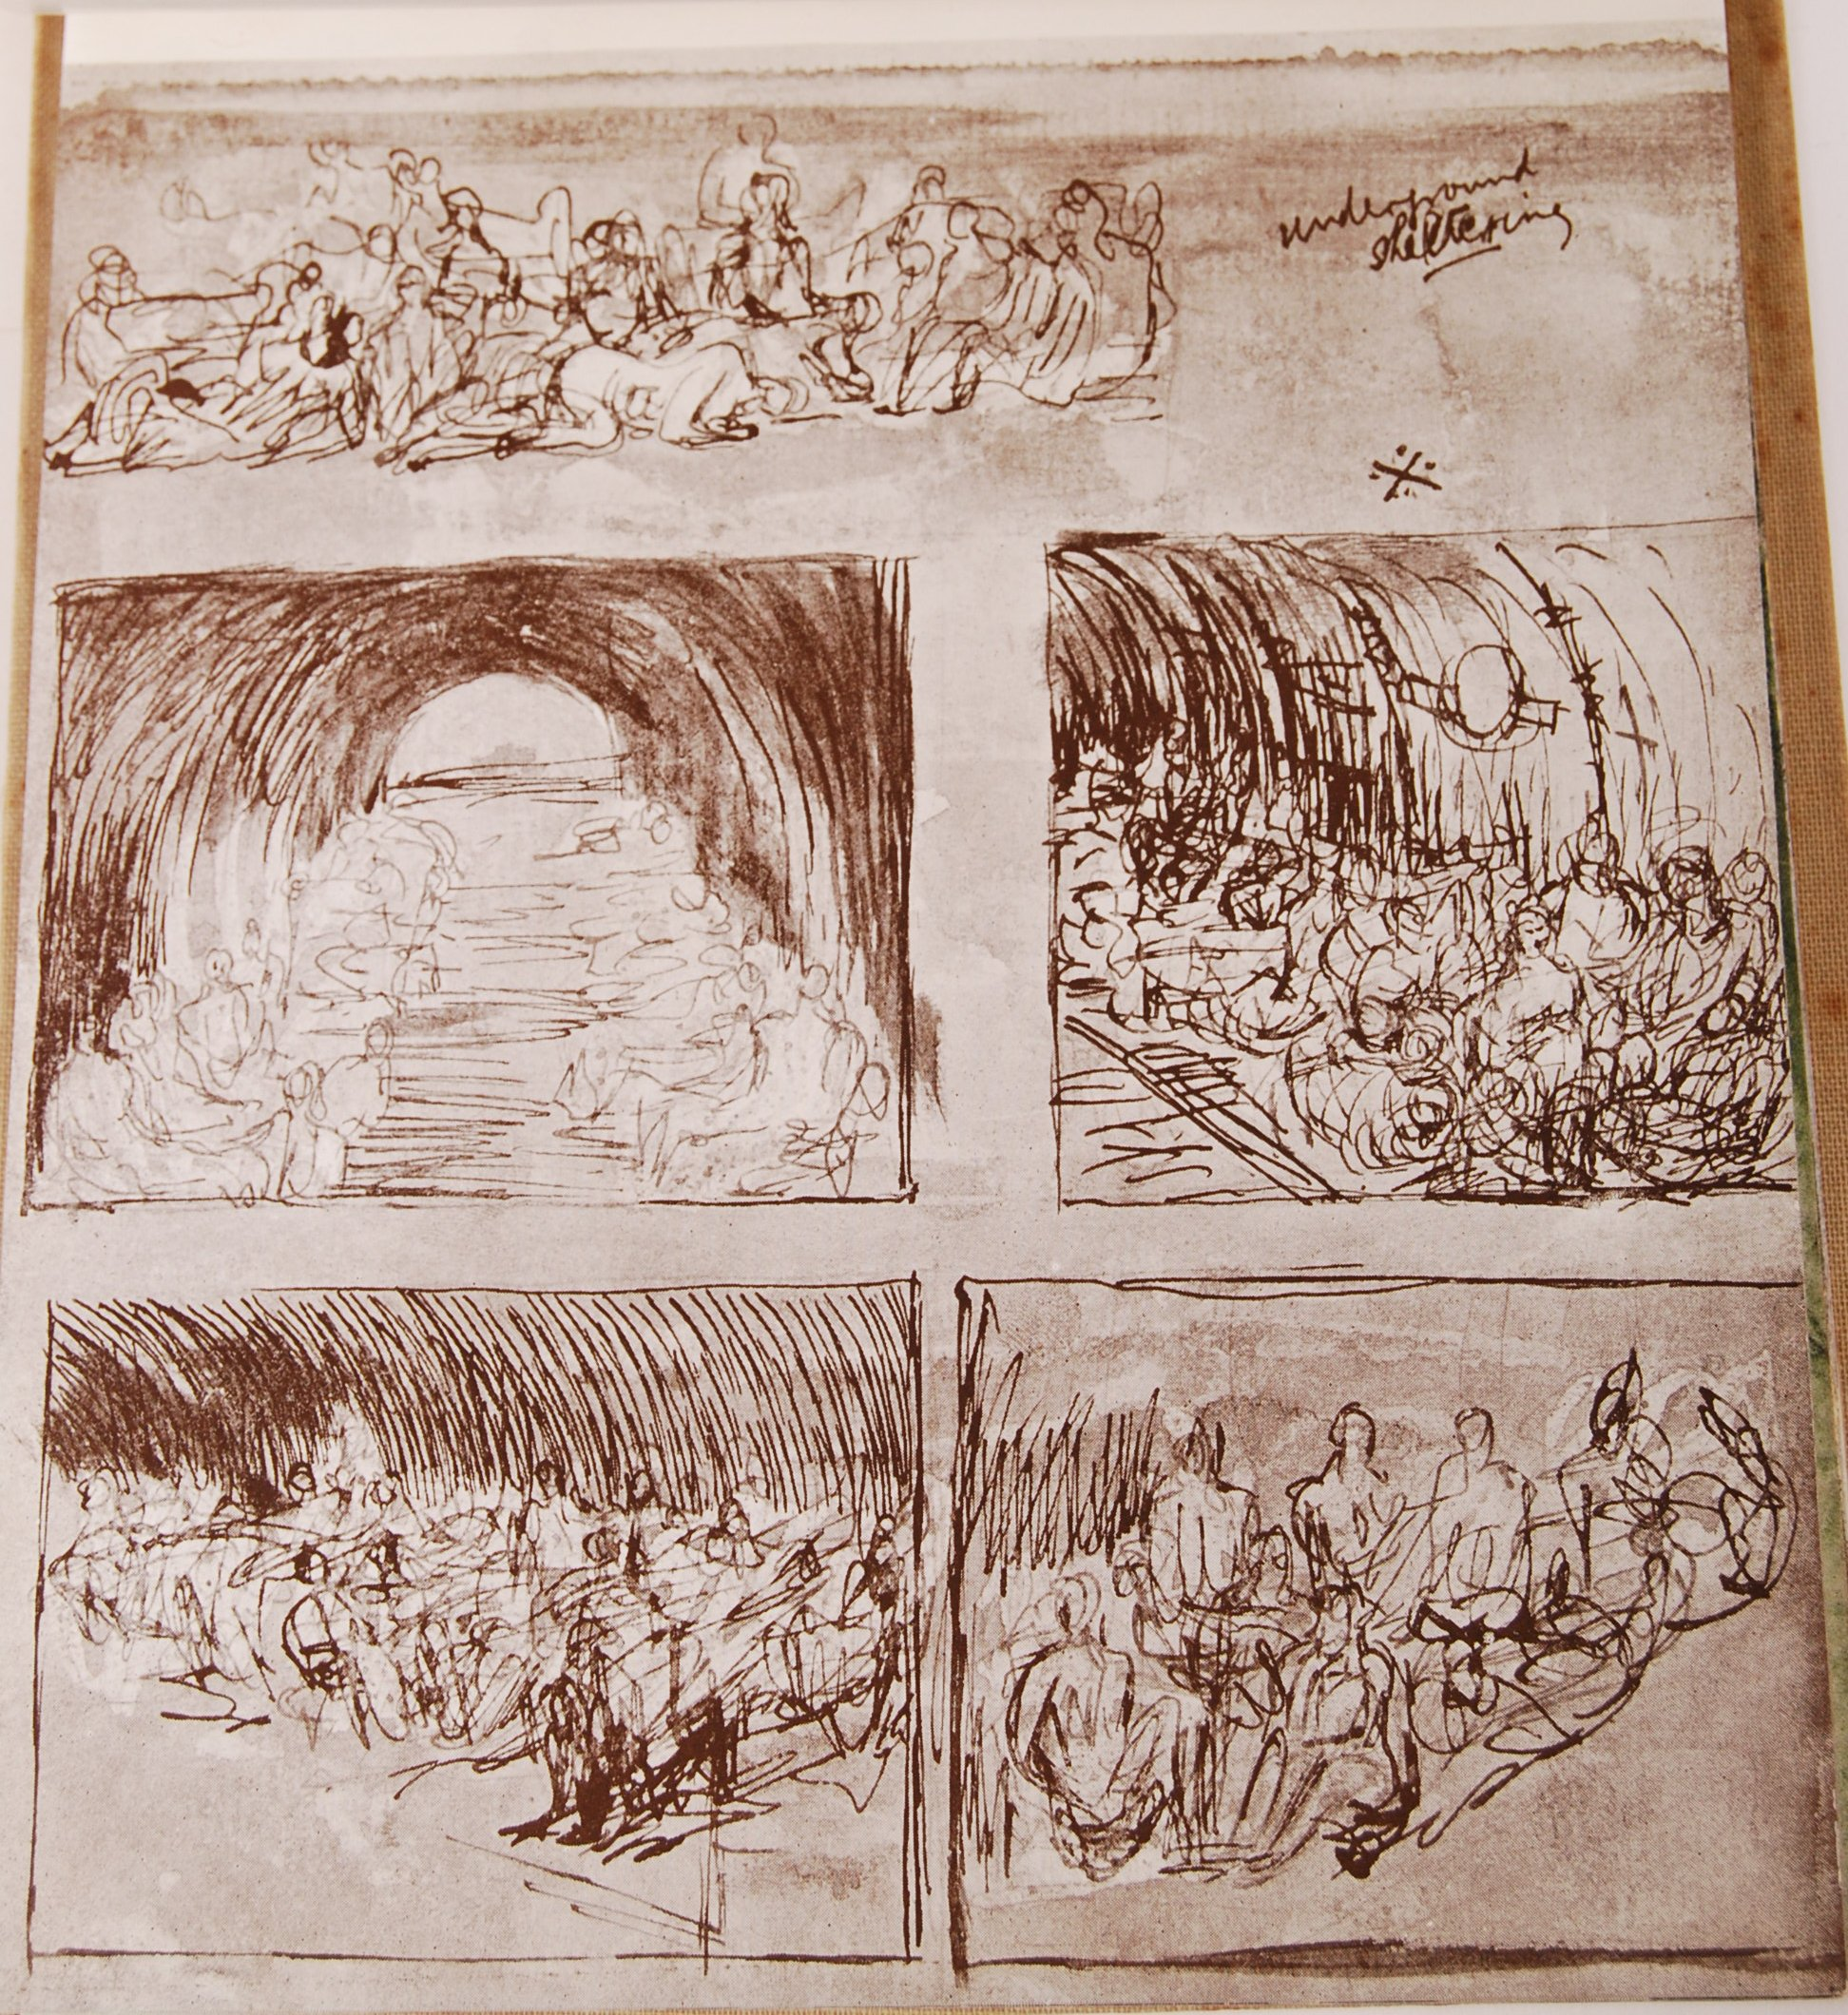 HENRY MOORE WWII SECOND WORLD WAR SHELTER SKETCH BOOK - Image 5 of 8